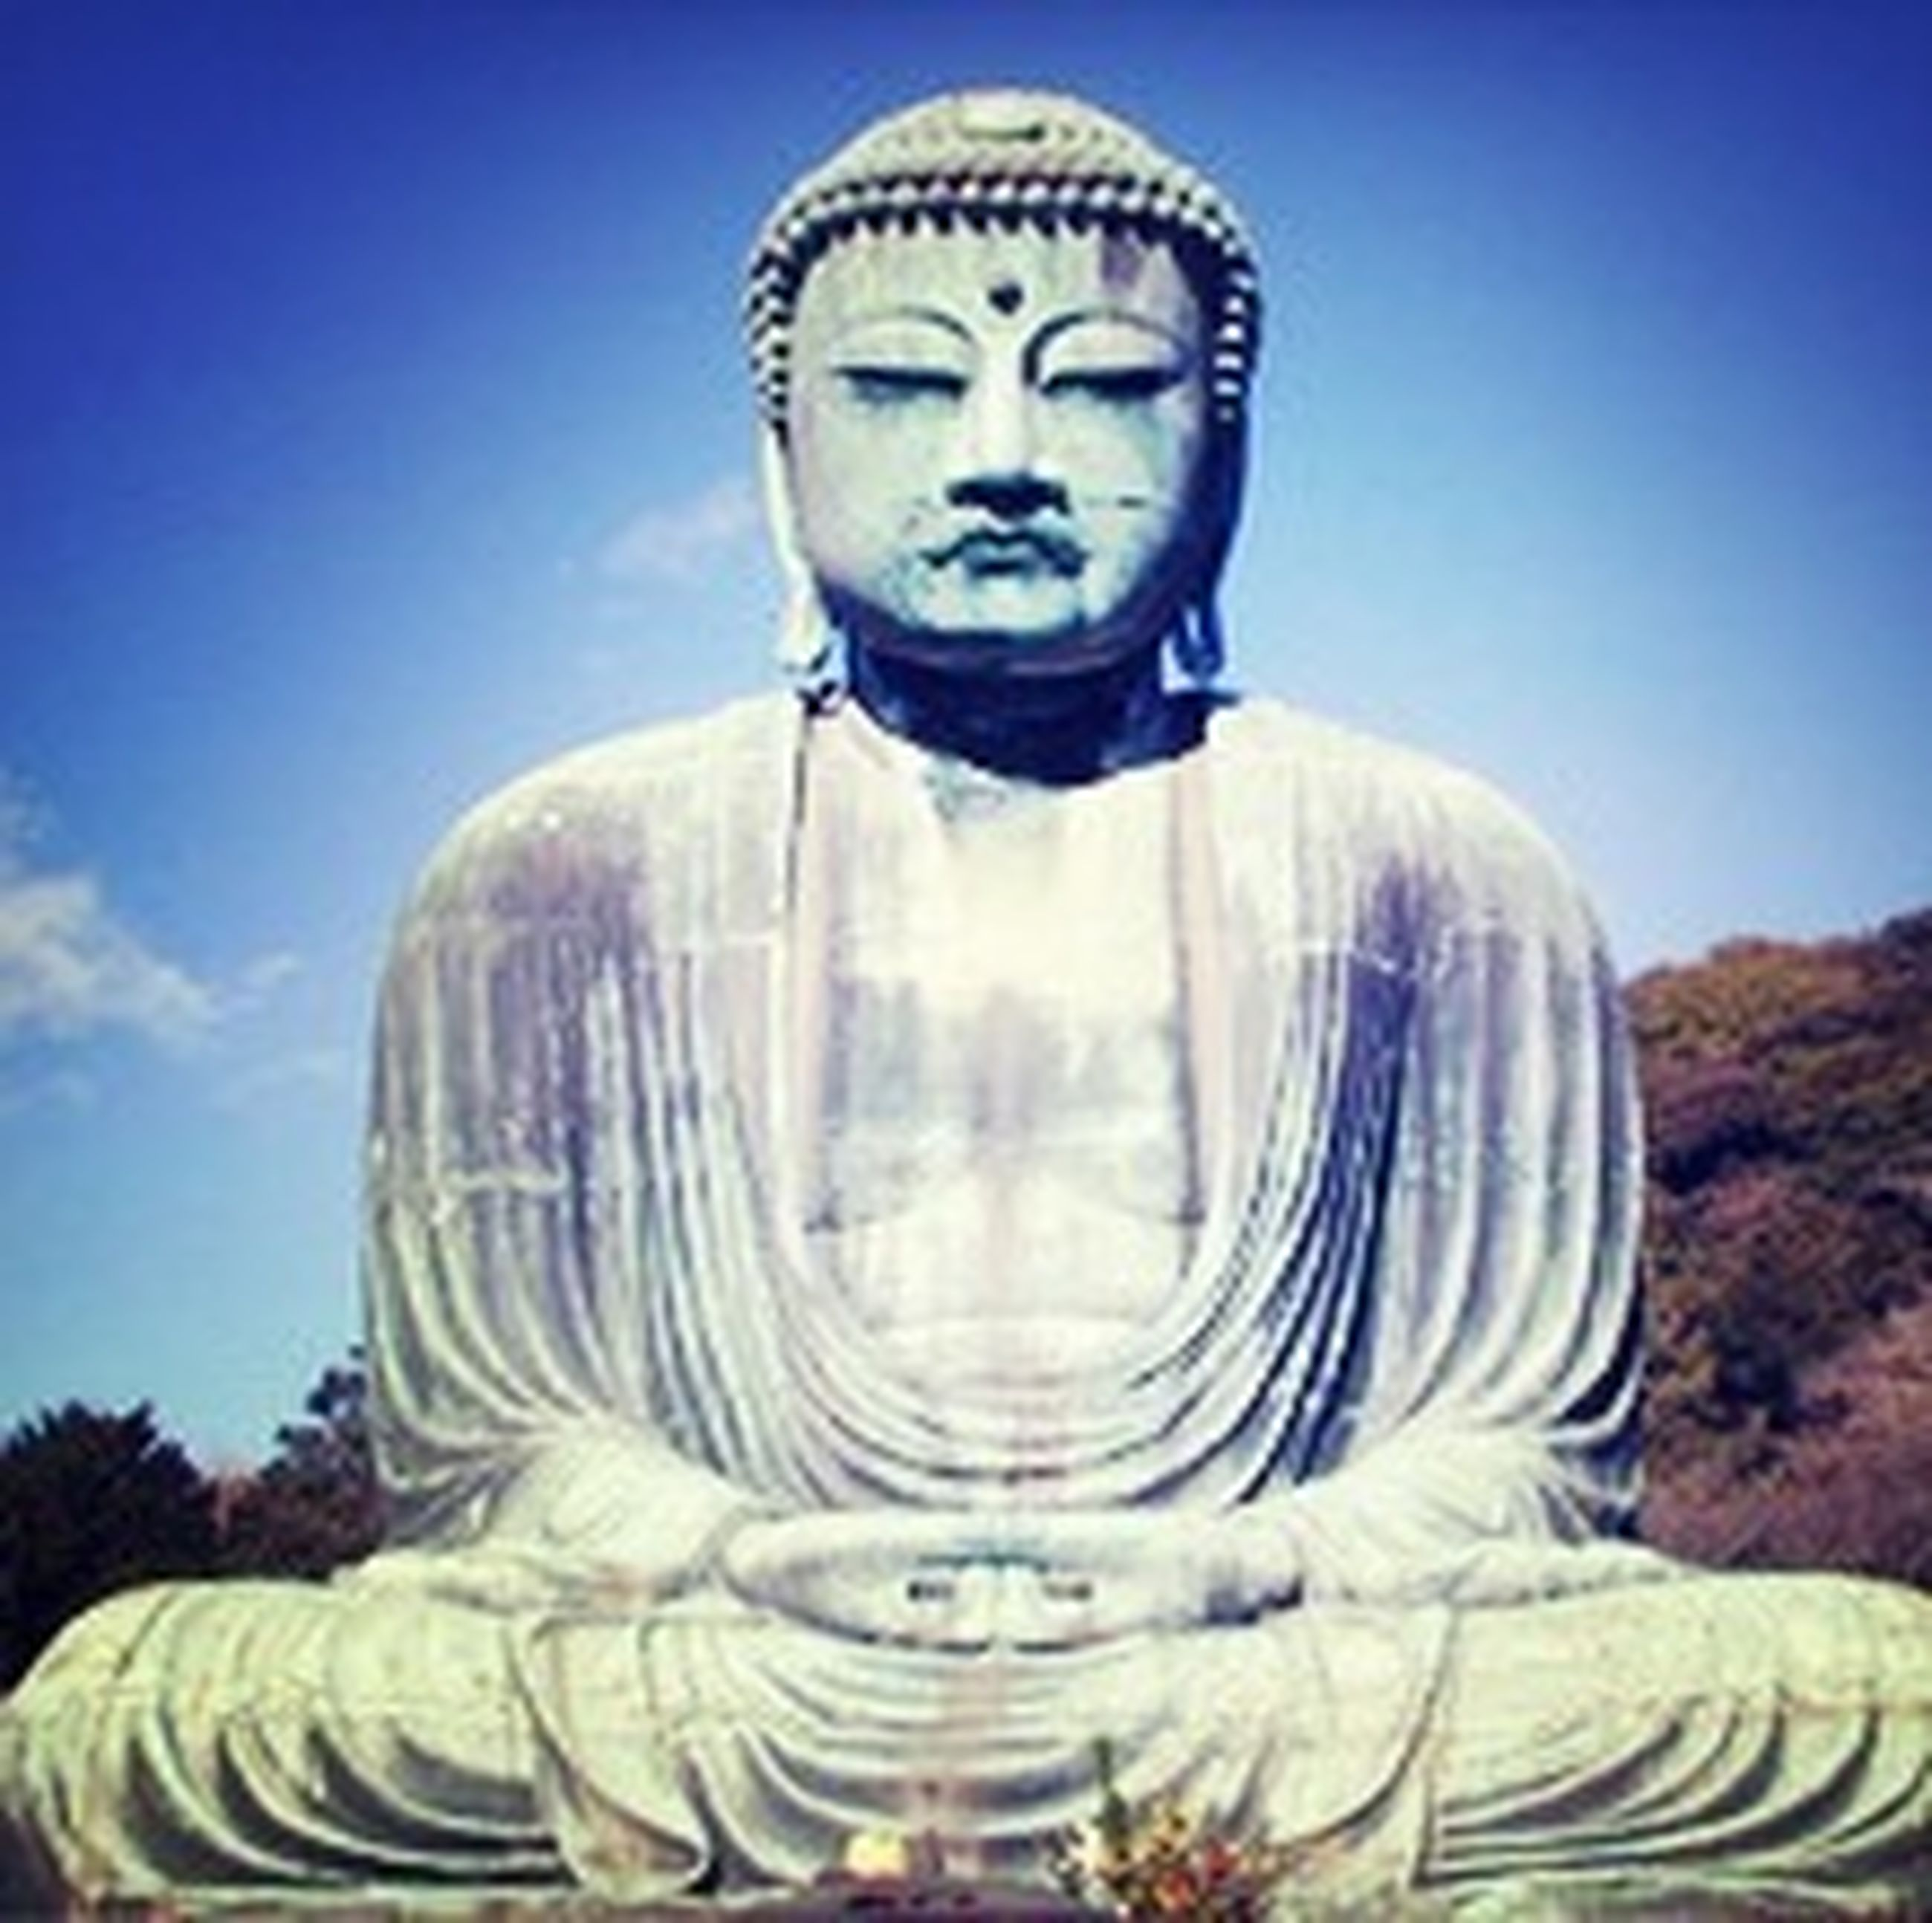 statue, human representation, sculpture, art and craft, art, creativity, buddha, religion, spirituality, low angle view, famous place, clear sky, travel destinations, carving - craft product, sky, travel, blue